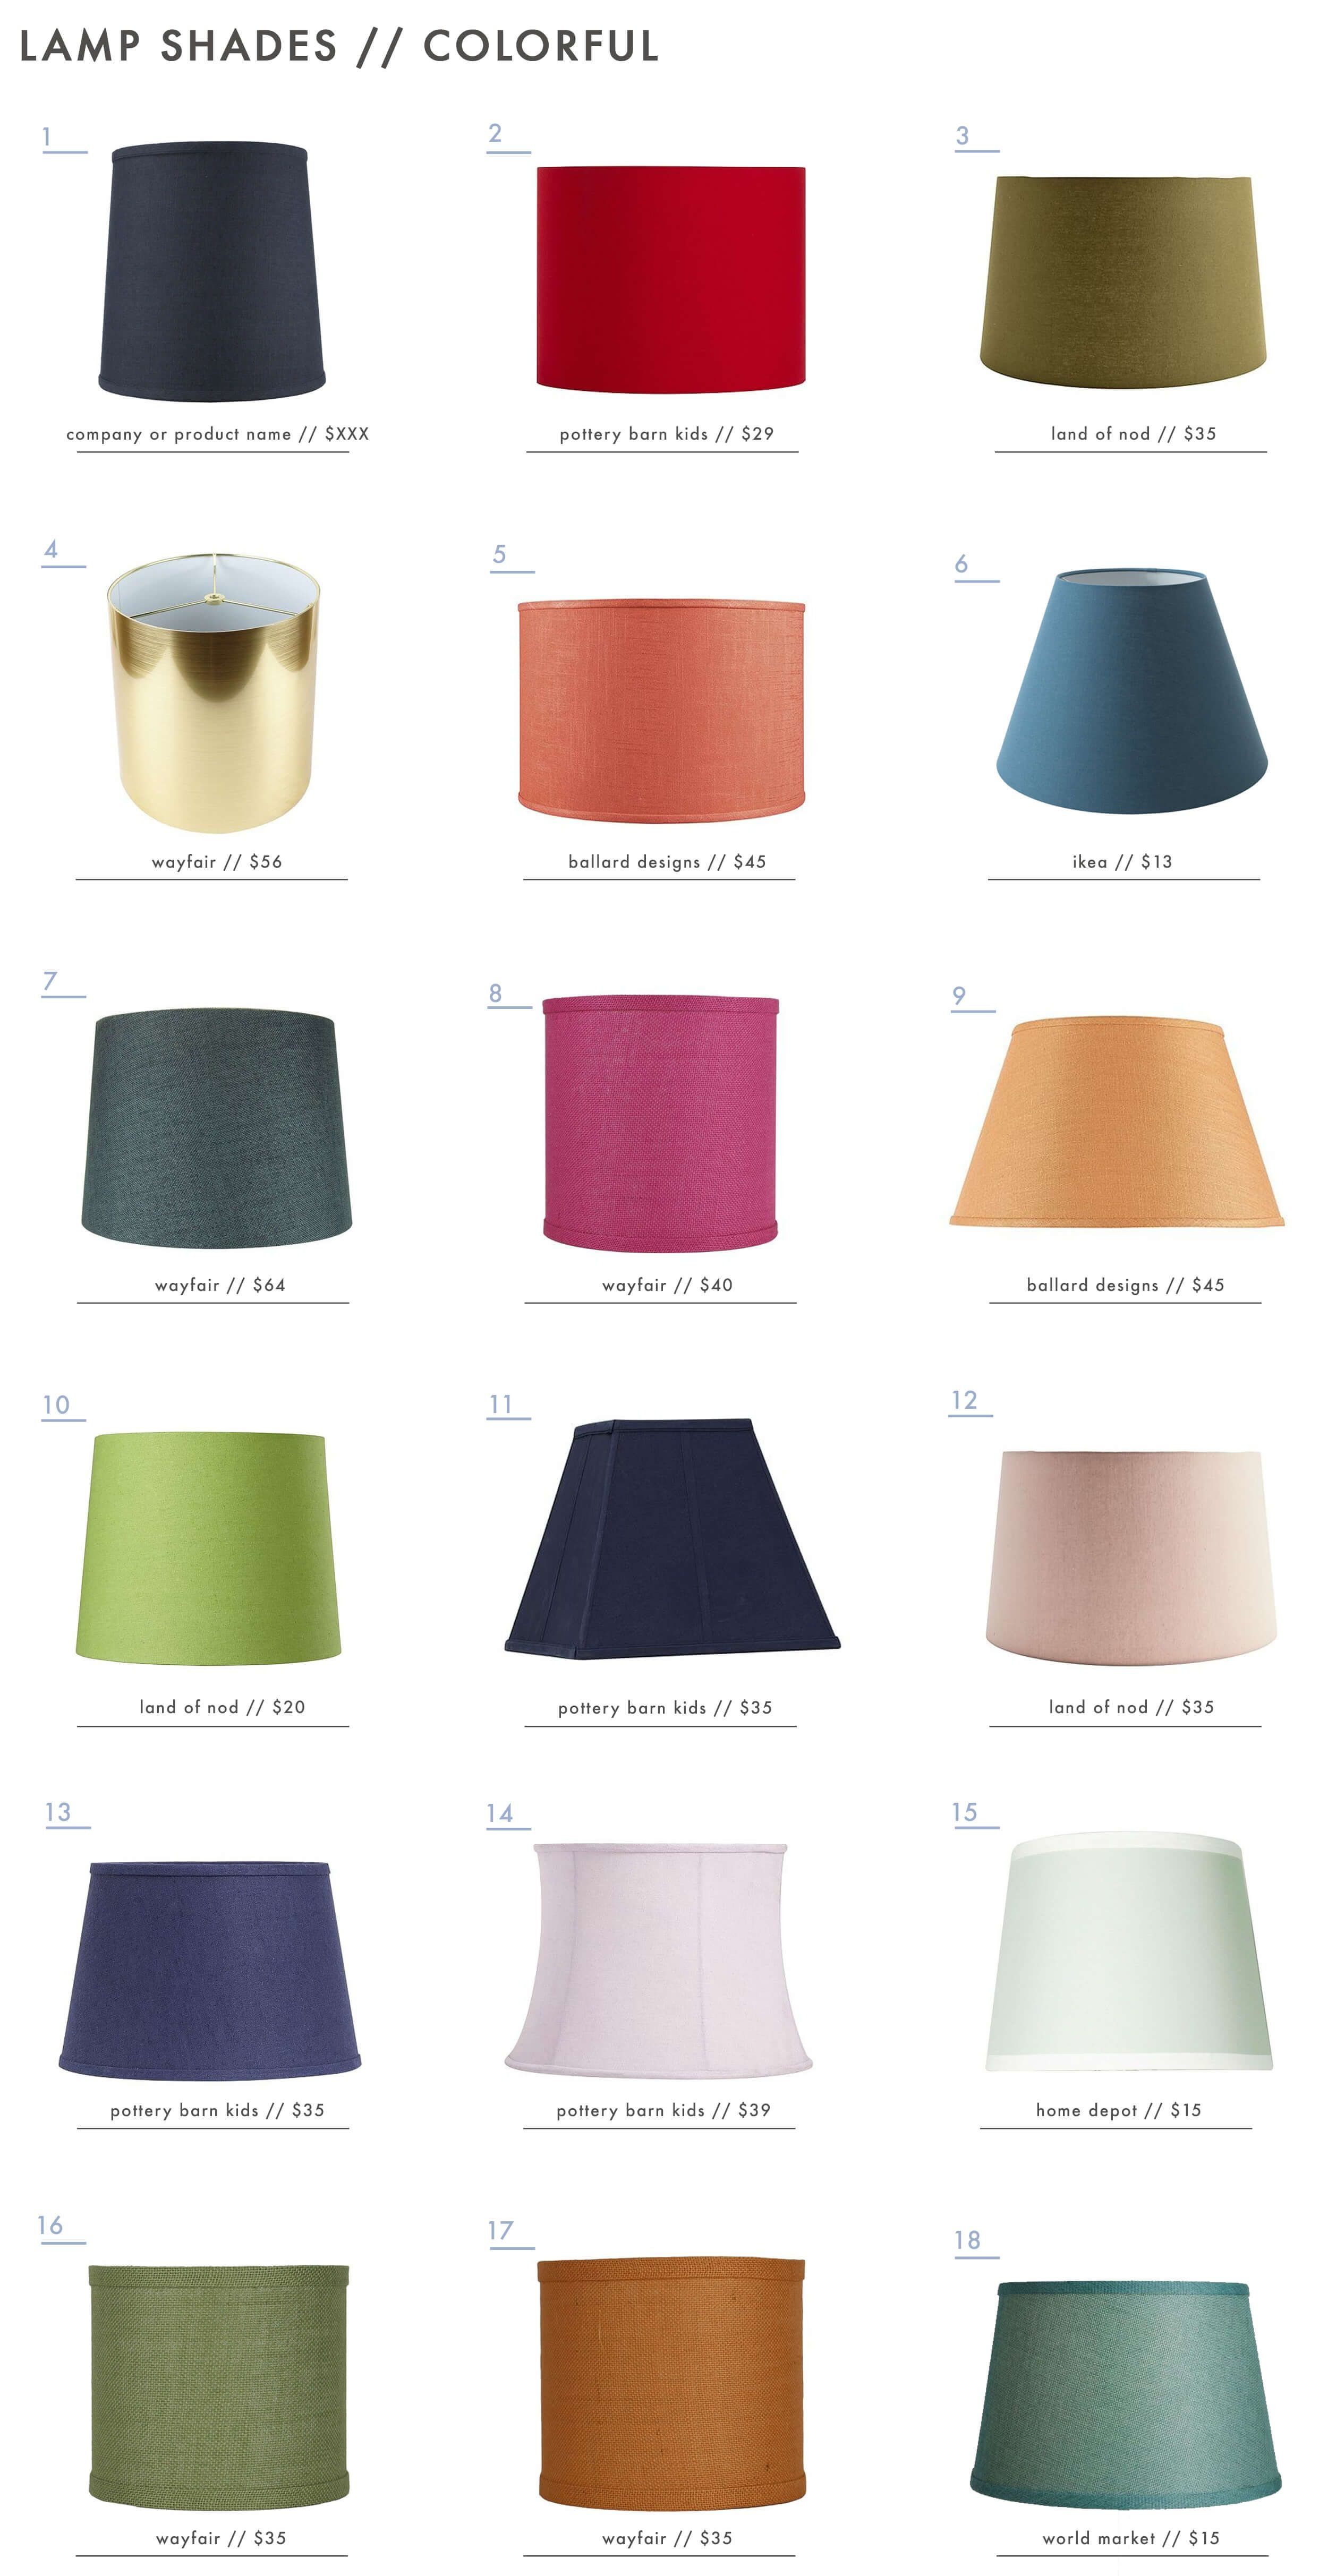 The Surprising Value Of Colored Textured Or Patterned Lampshades Lamp Shades Small Lamp Shades Colorful Lamp Shades